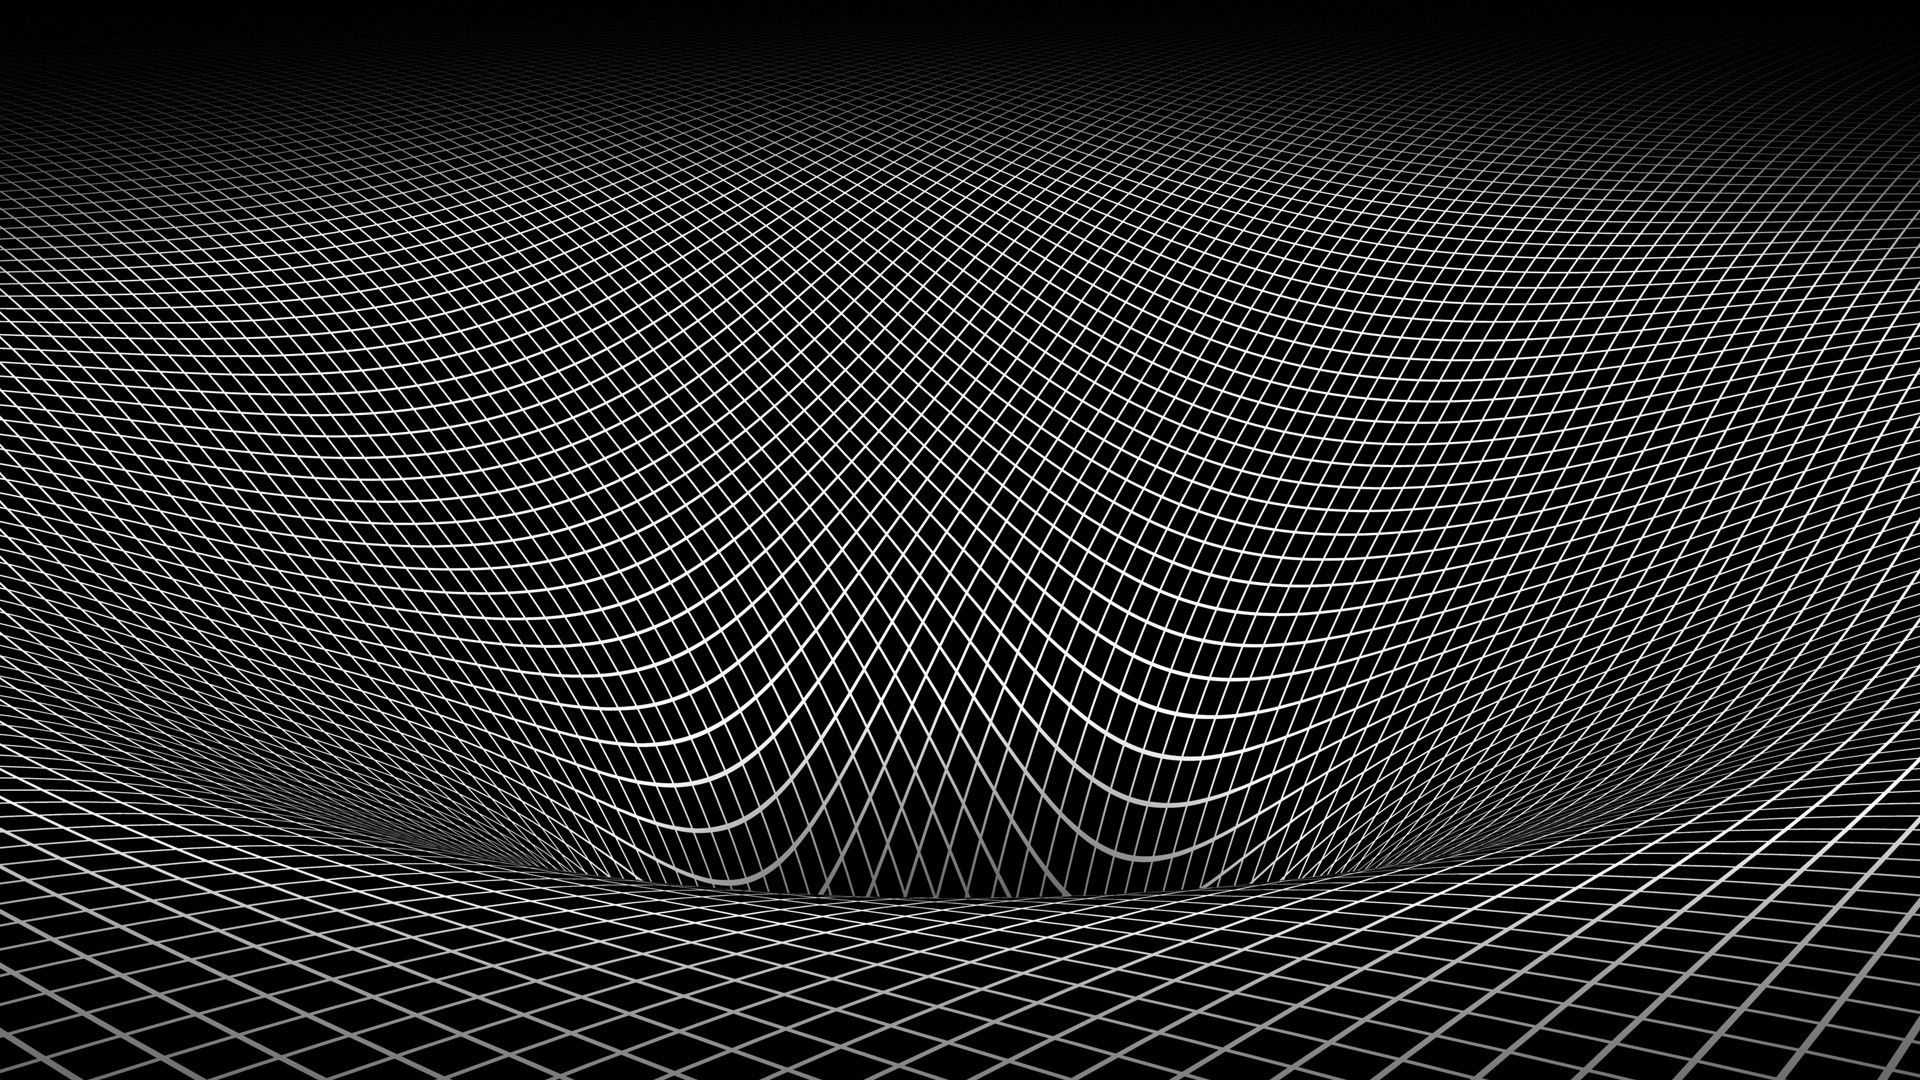 Image for abstract art black and white red wallpaper hd background image for abstract art black and white red wallpaper hd background voltagebd Choice Image